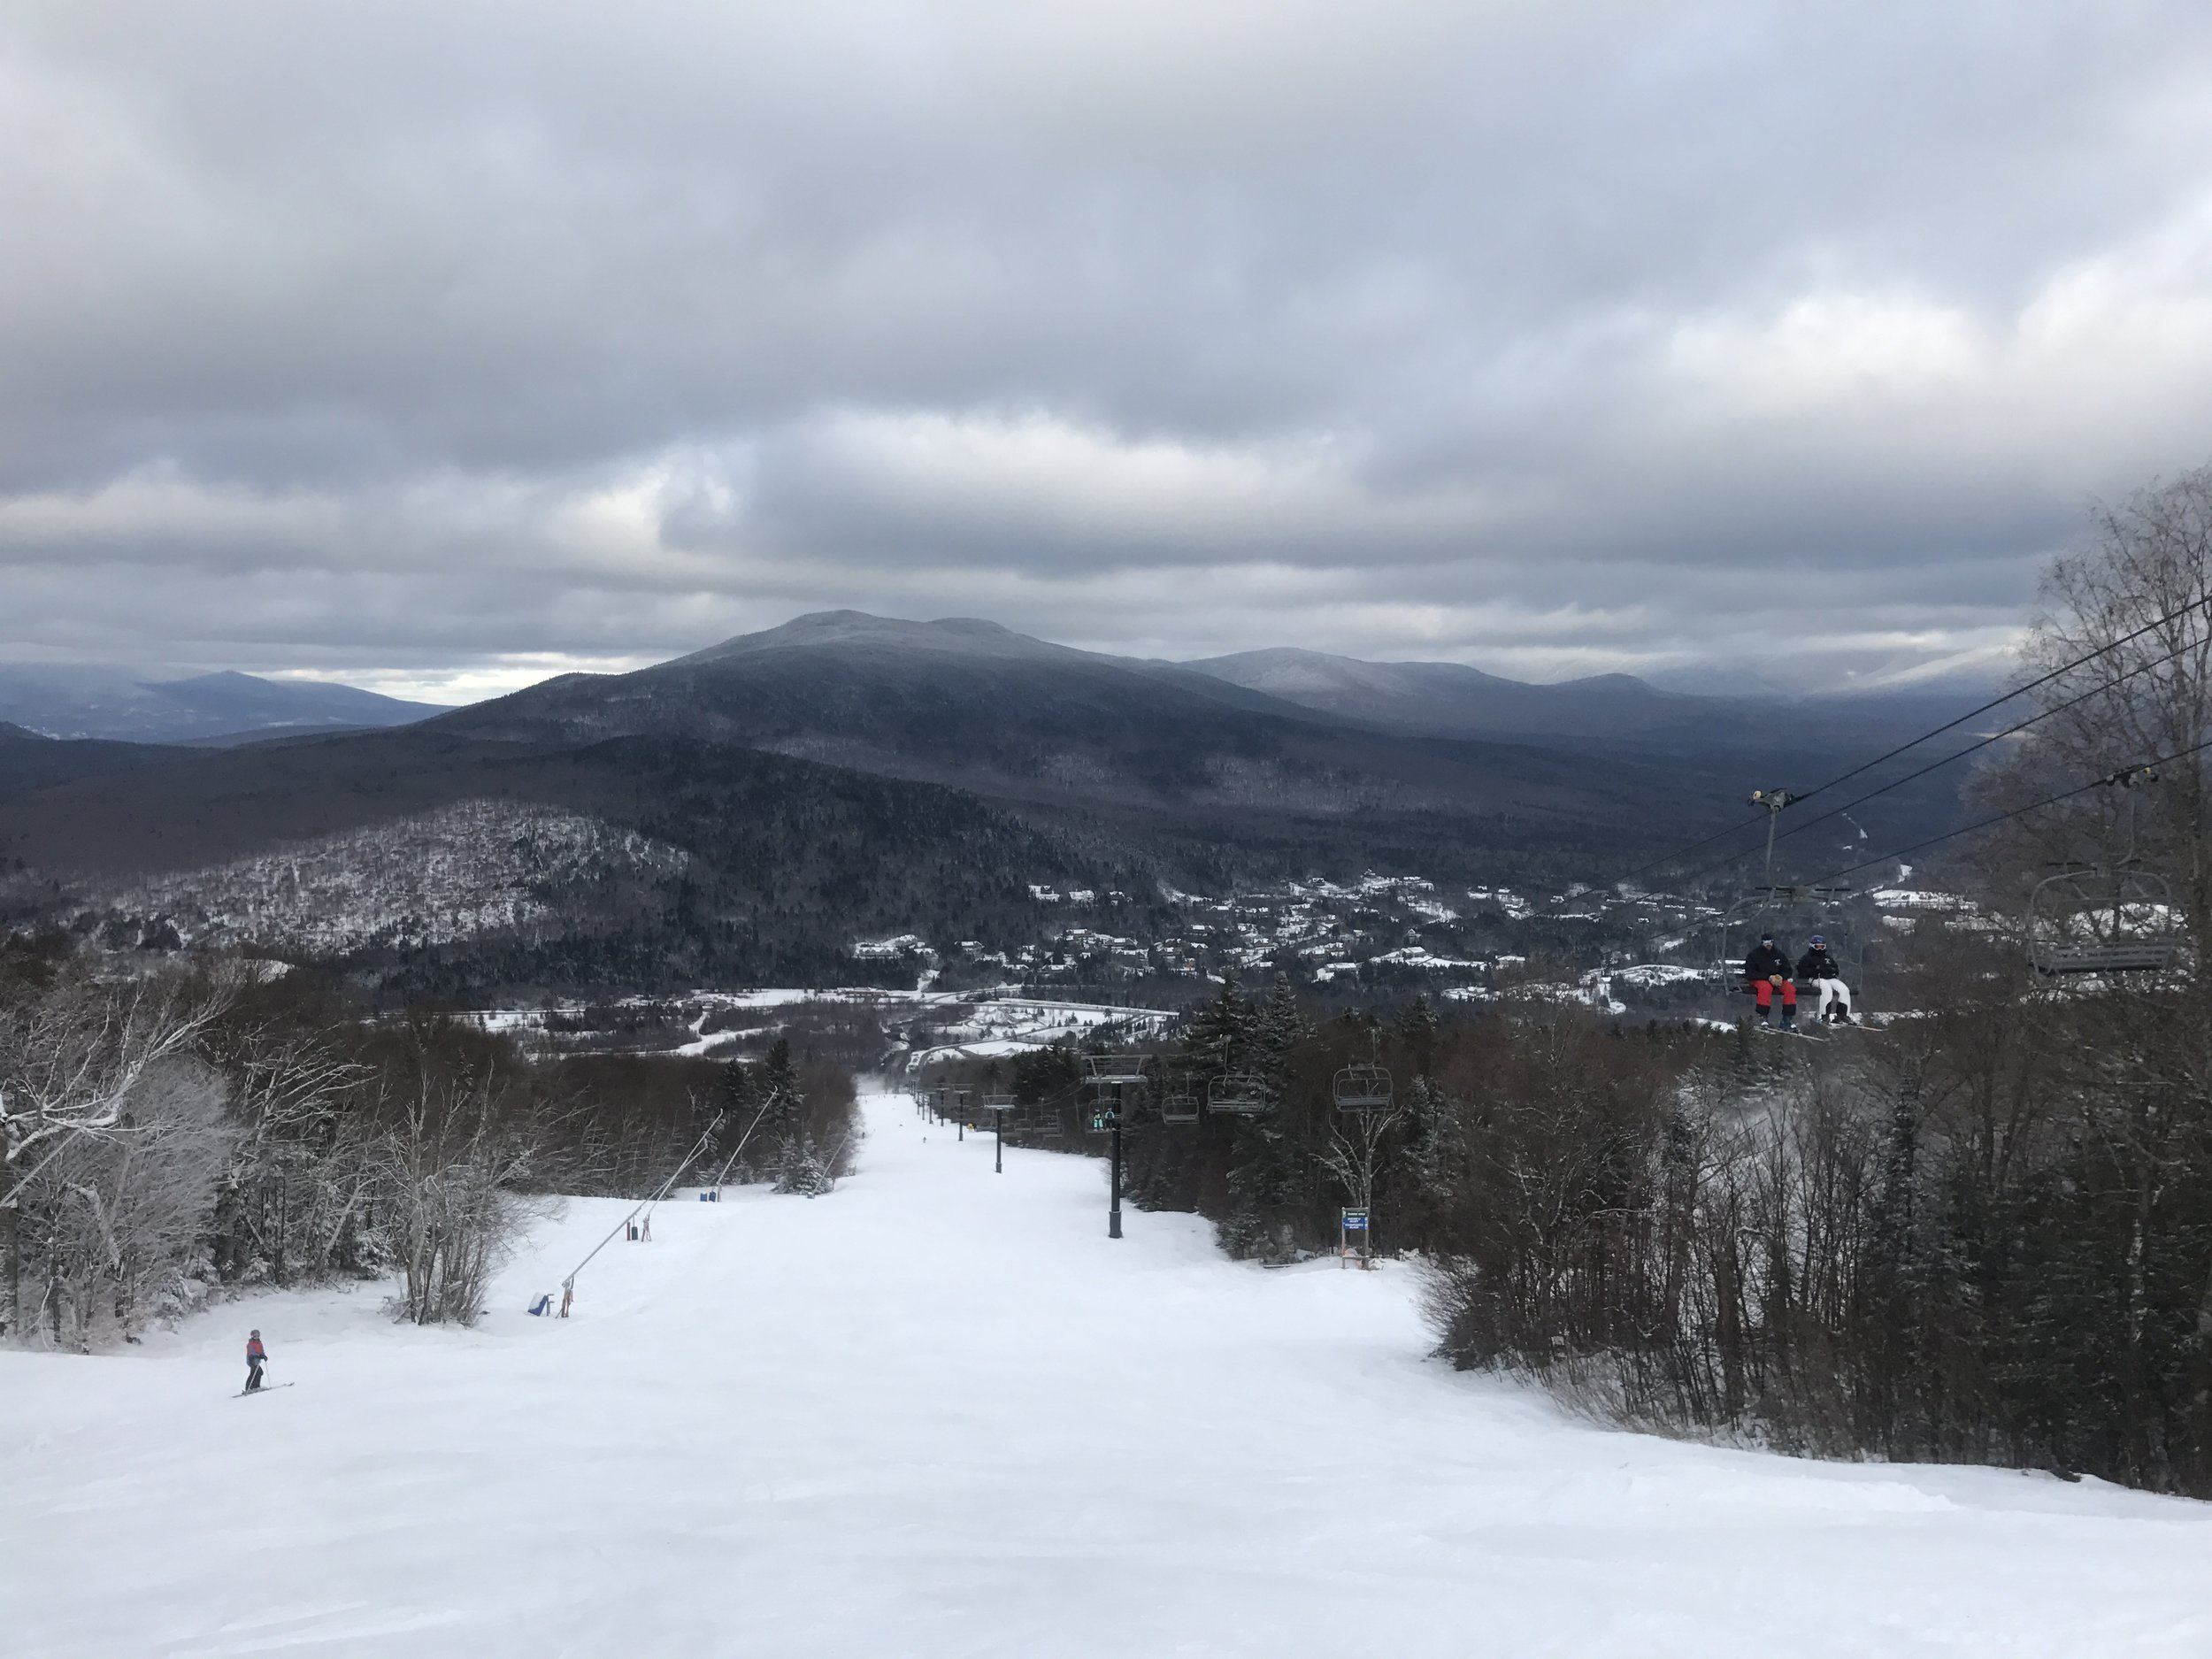 Bretton Woods - View from the zephyr chair